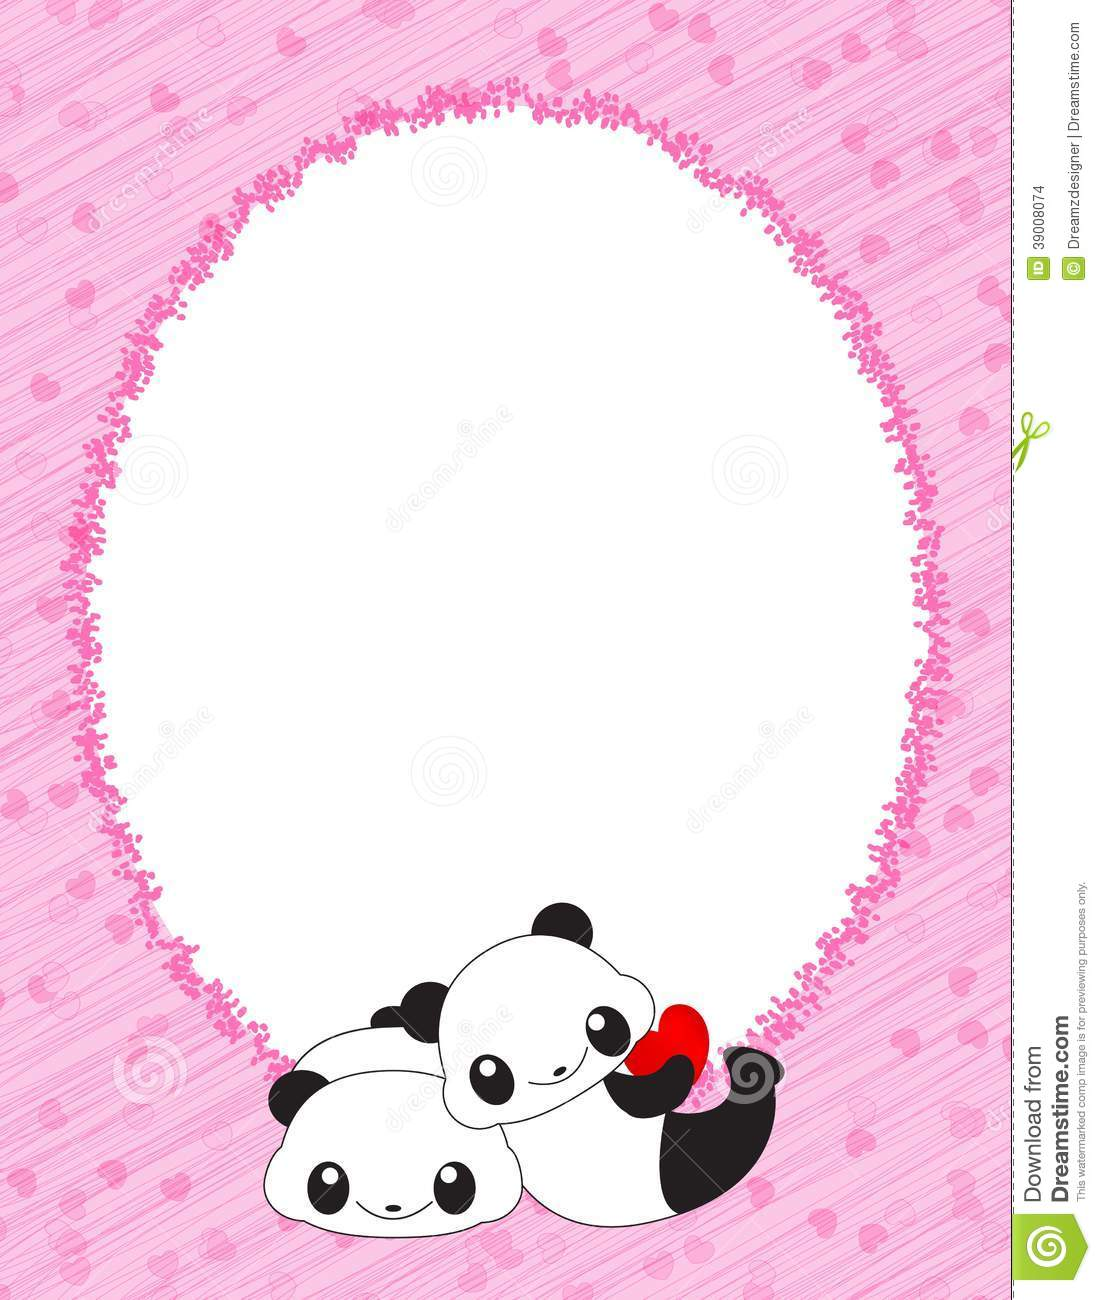 Pink Frame With Hearts And Pandas Stock Vector